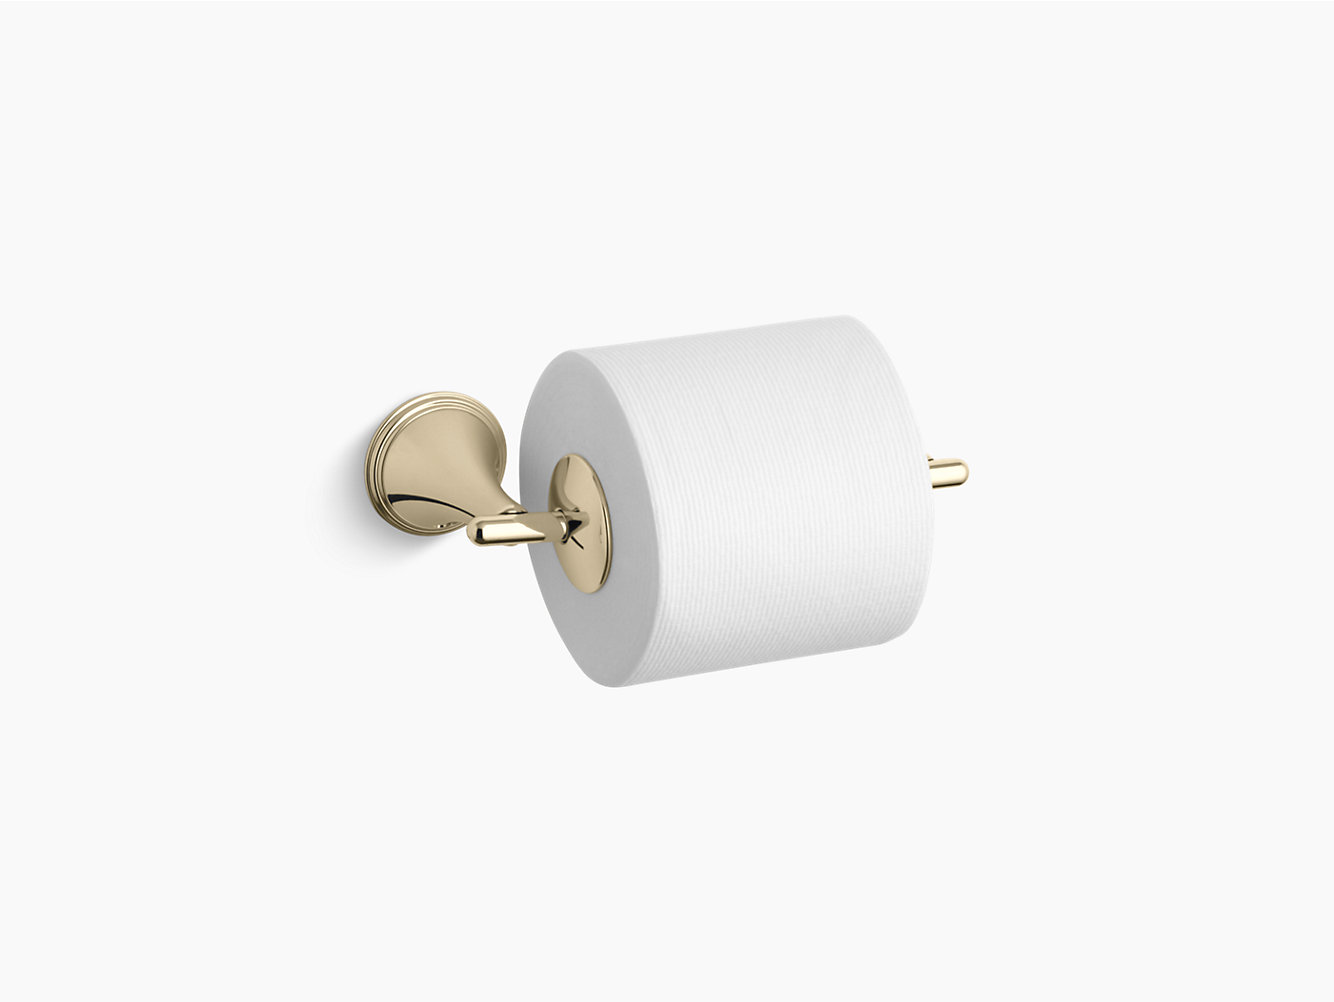 gold jieshalang aluminium item home holders roll tissue phone bathroom dispenser toilet holder from paper space in accessories